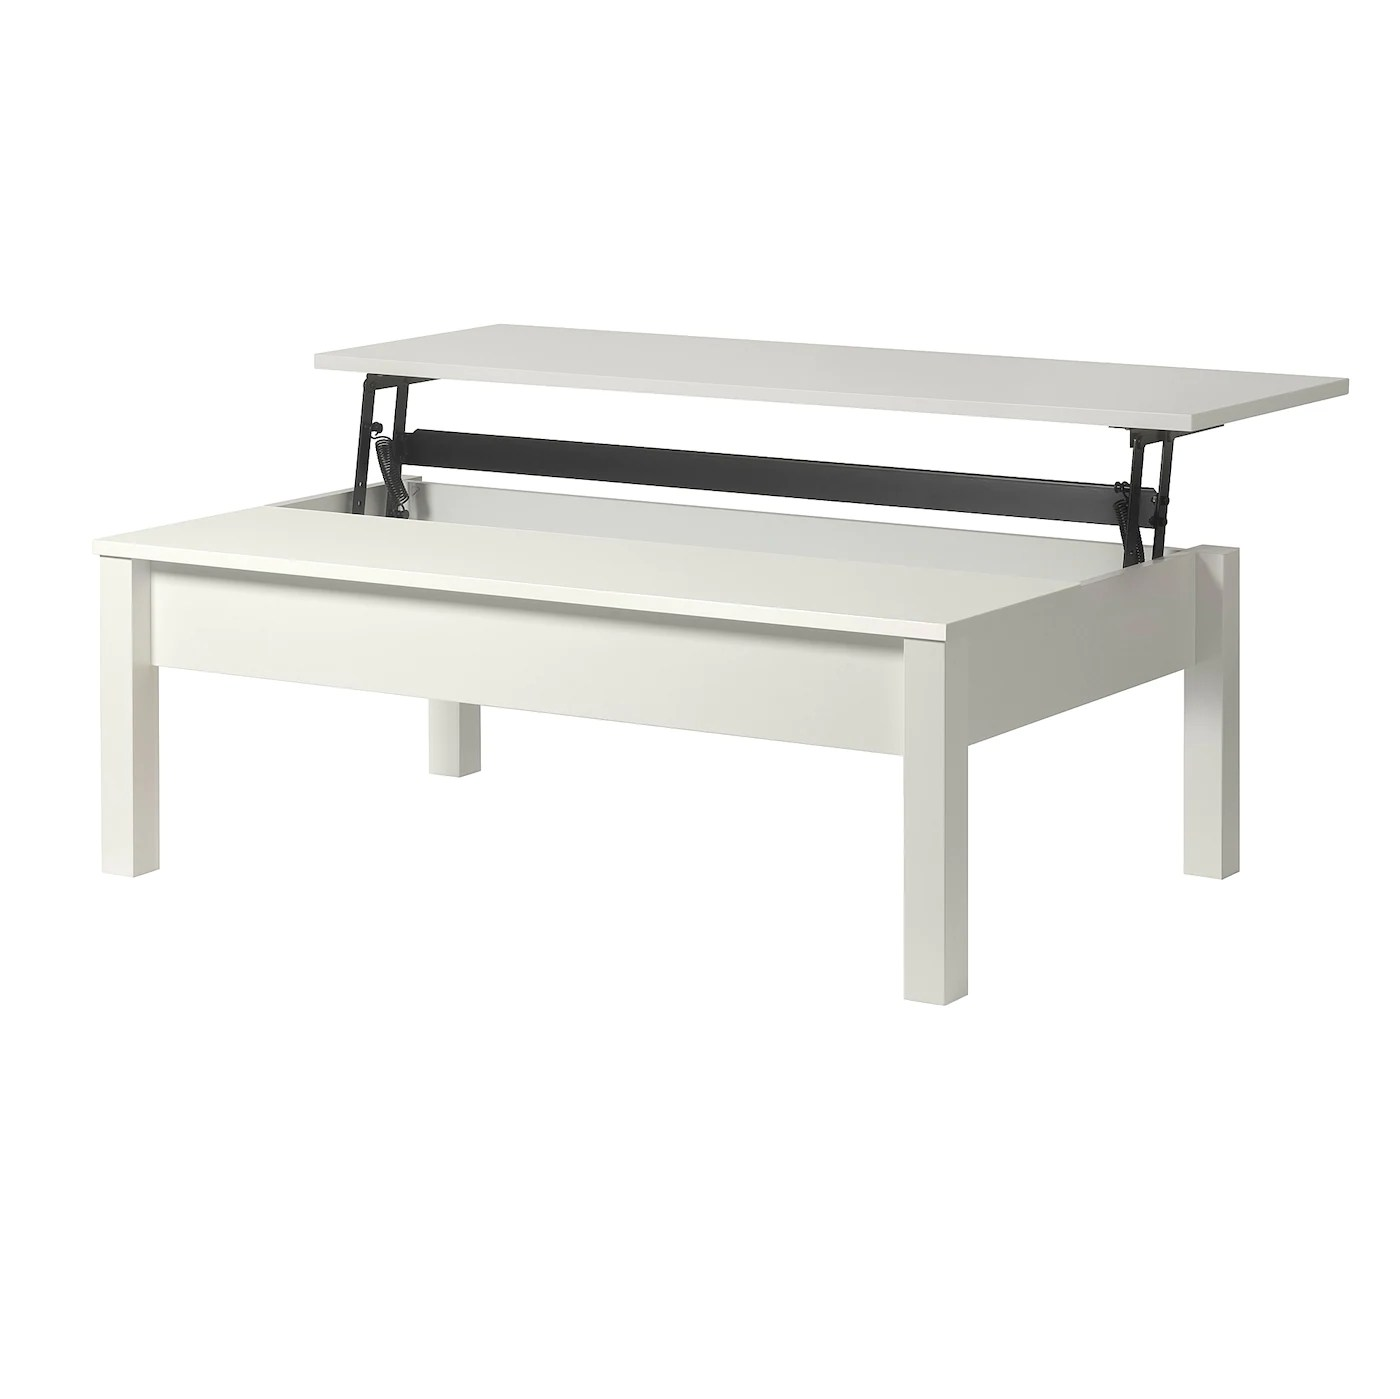 Trulstorp Table Basse Blanc 115x70cm Magasinez Ici Ikea